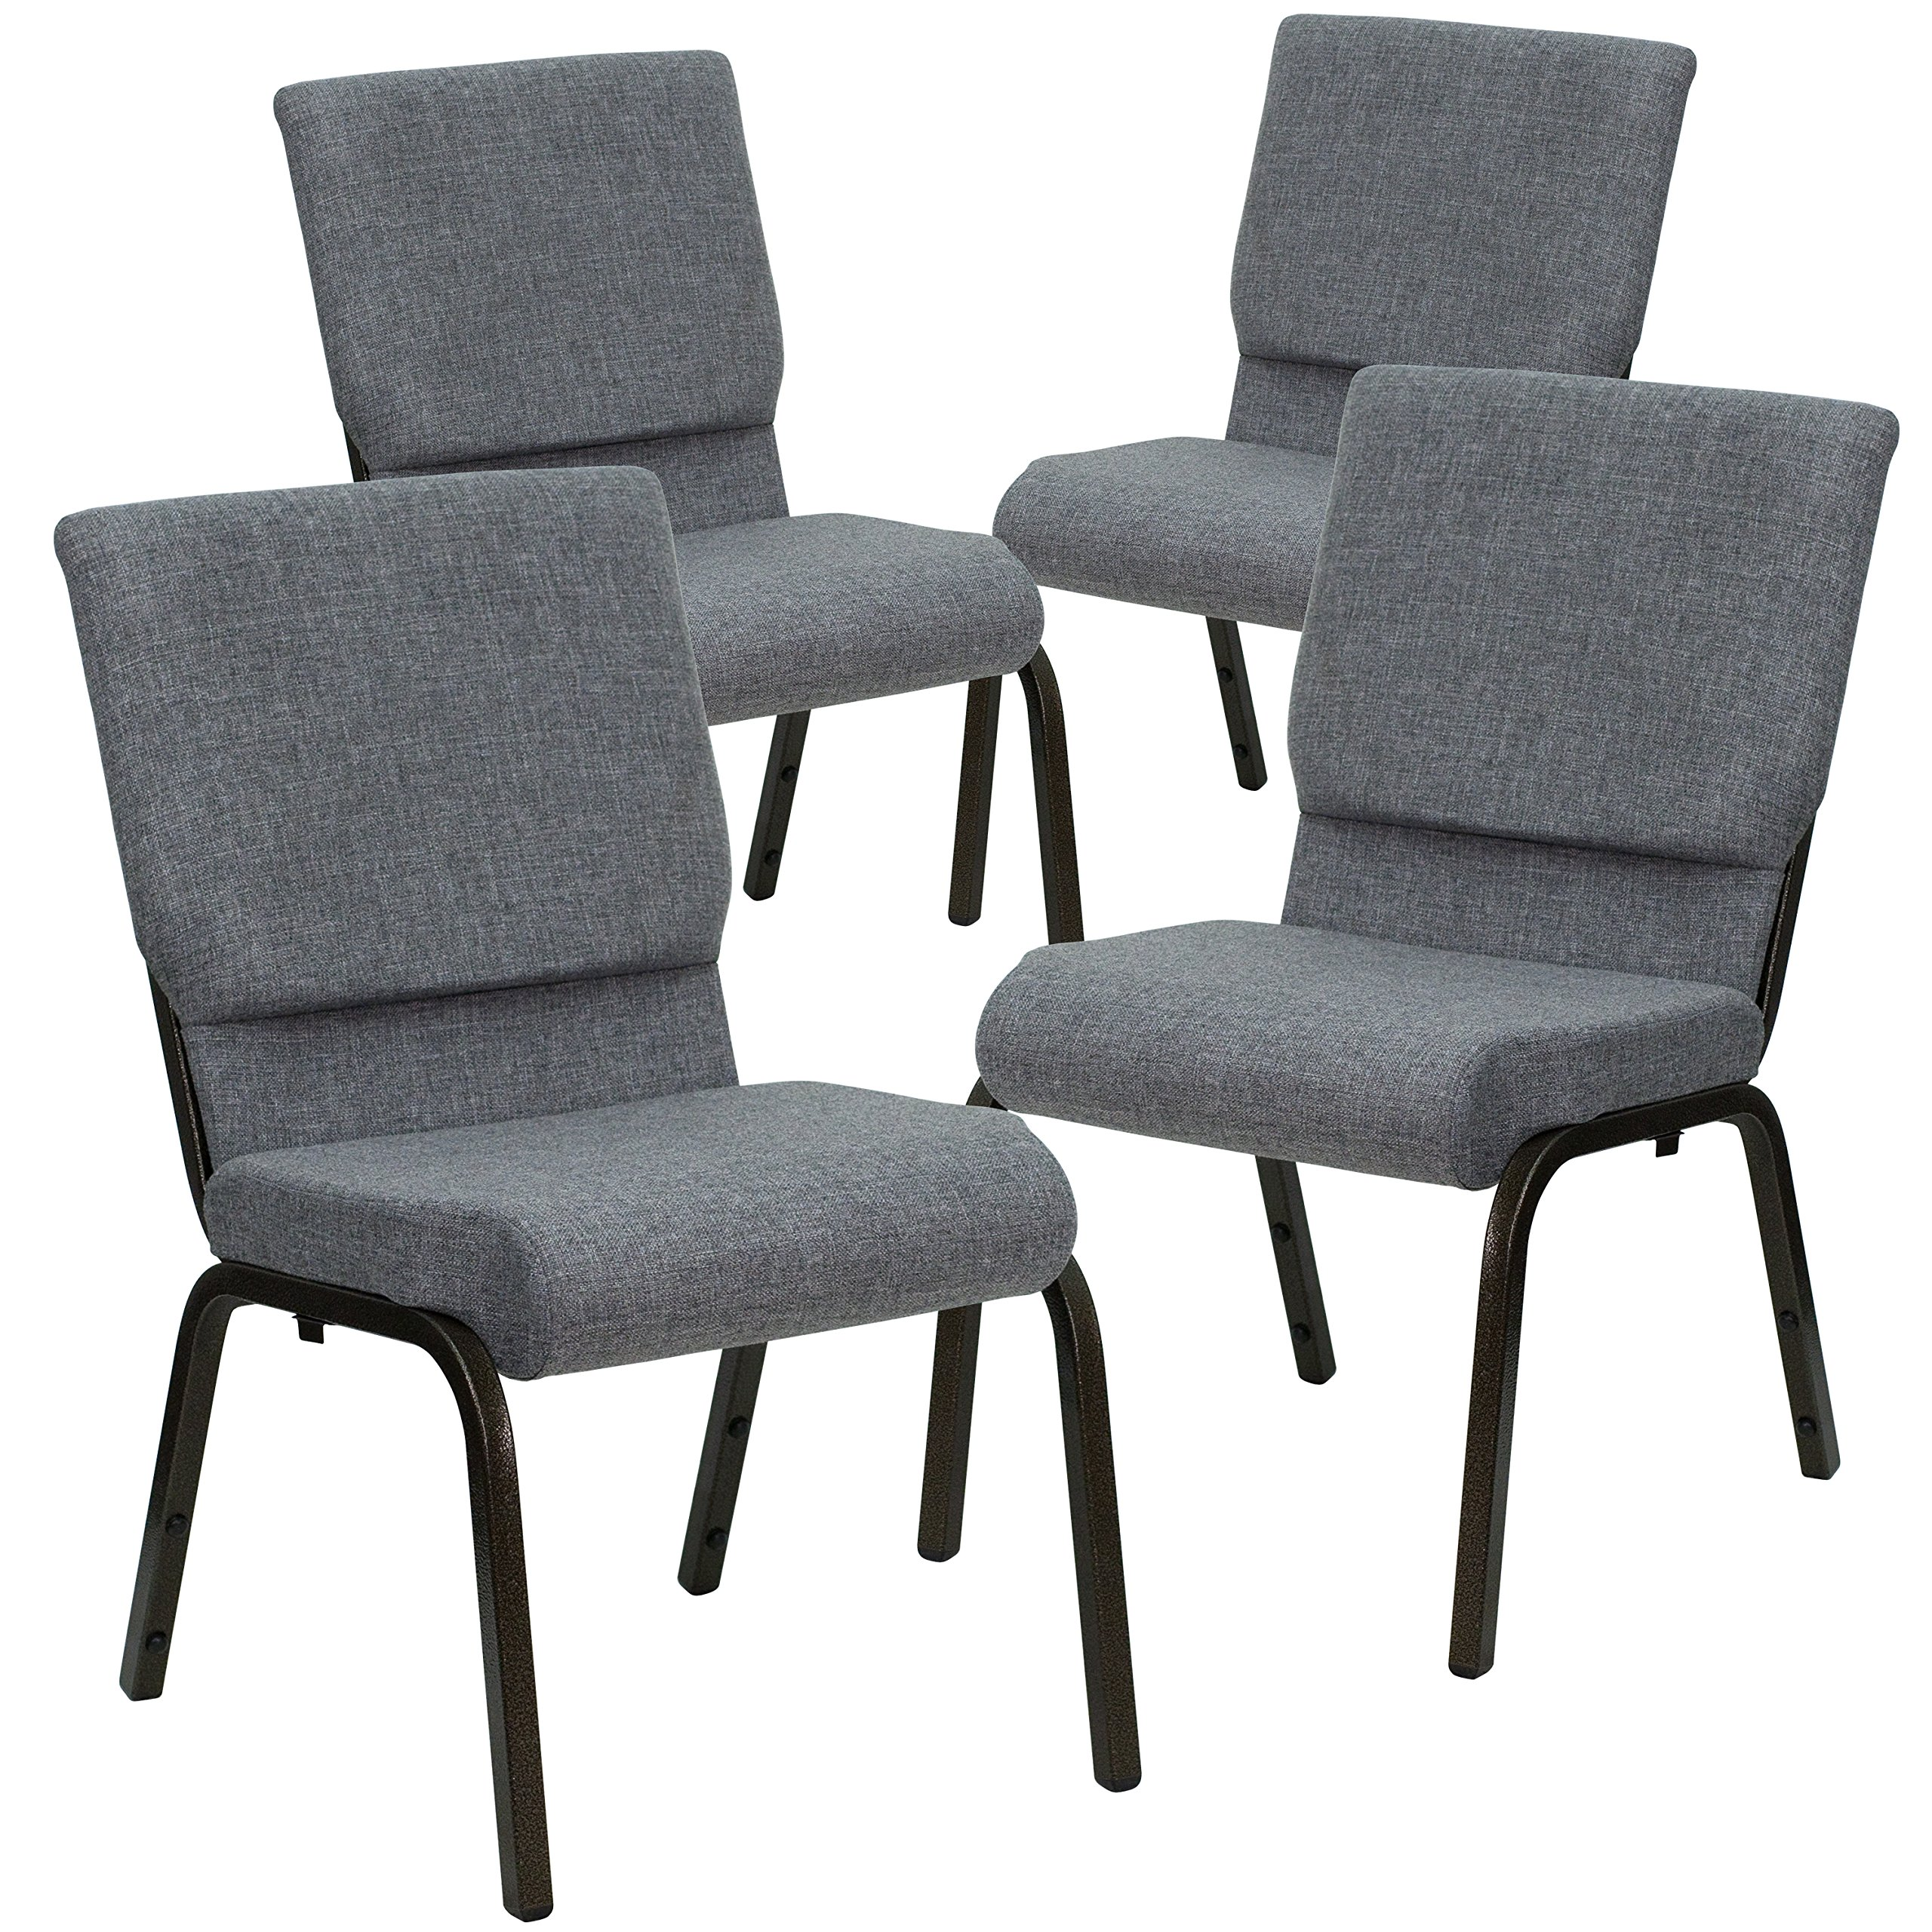 Flash Furniture 4 Pk. HERCULES Series 18.5''W Stacking Church Chair in Gray Fabric - Gold Vein Frame by Flash Furniture